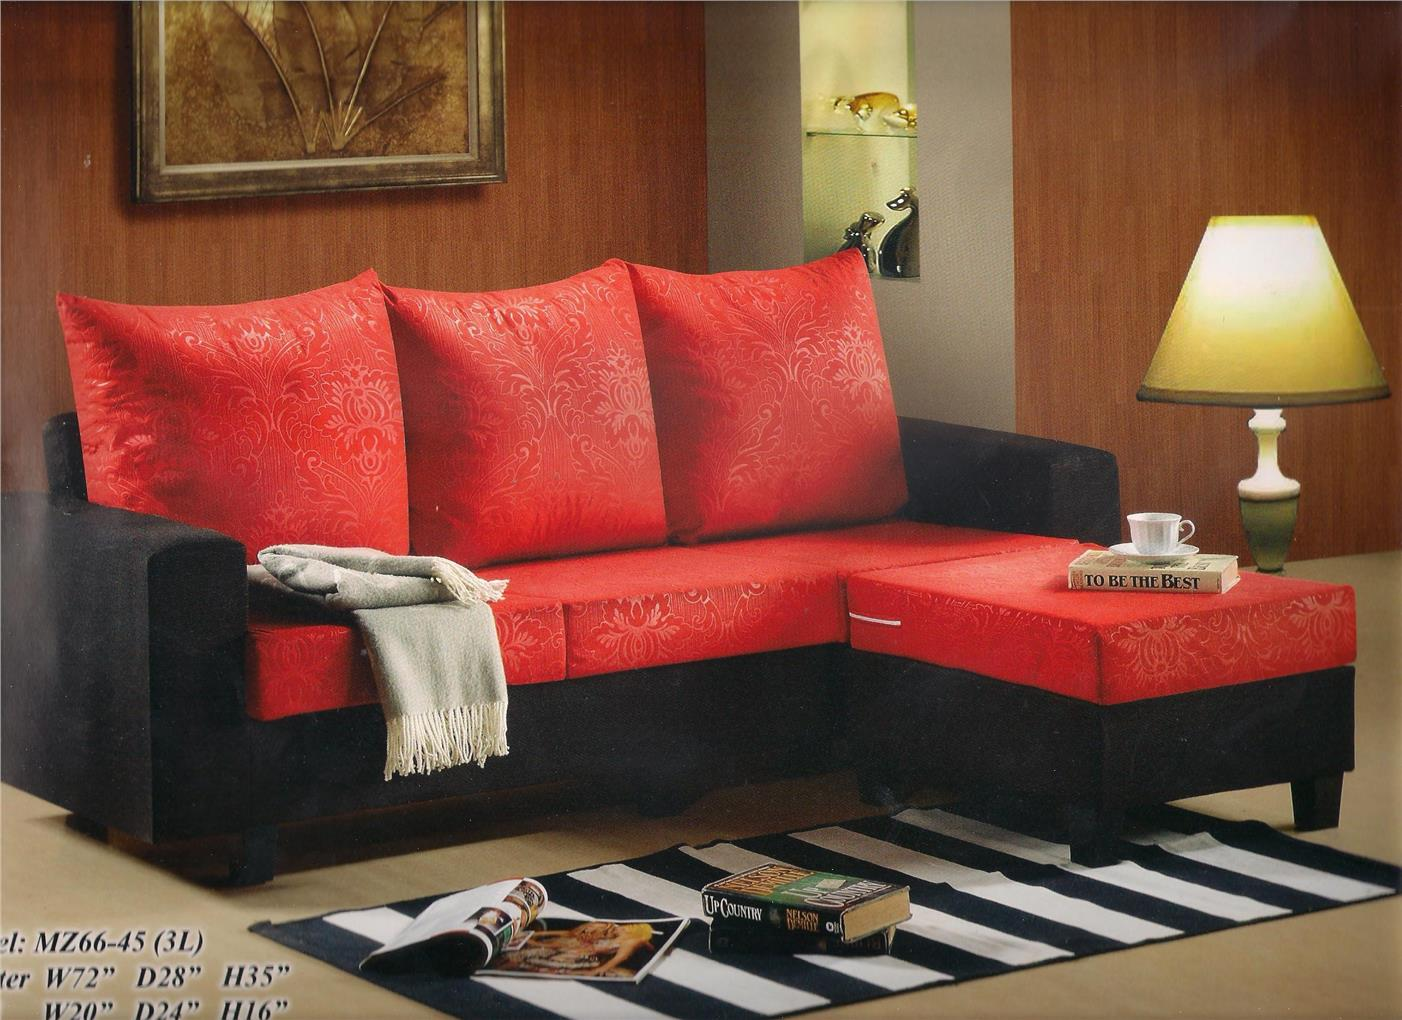 nicehome low price 3l shape sofa se end 12 23 2016 2 15 pm